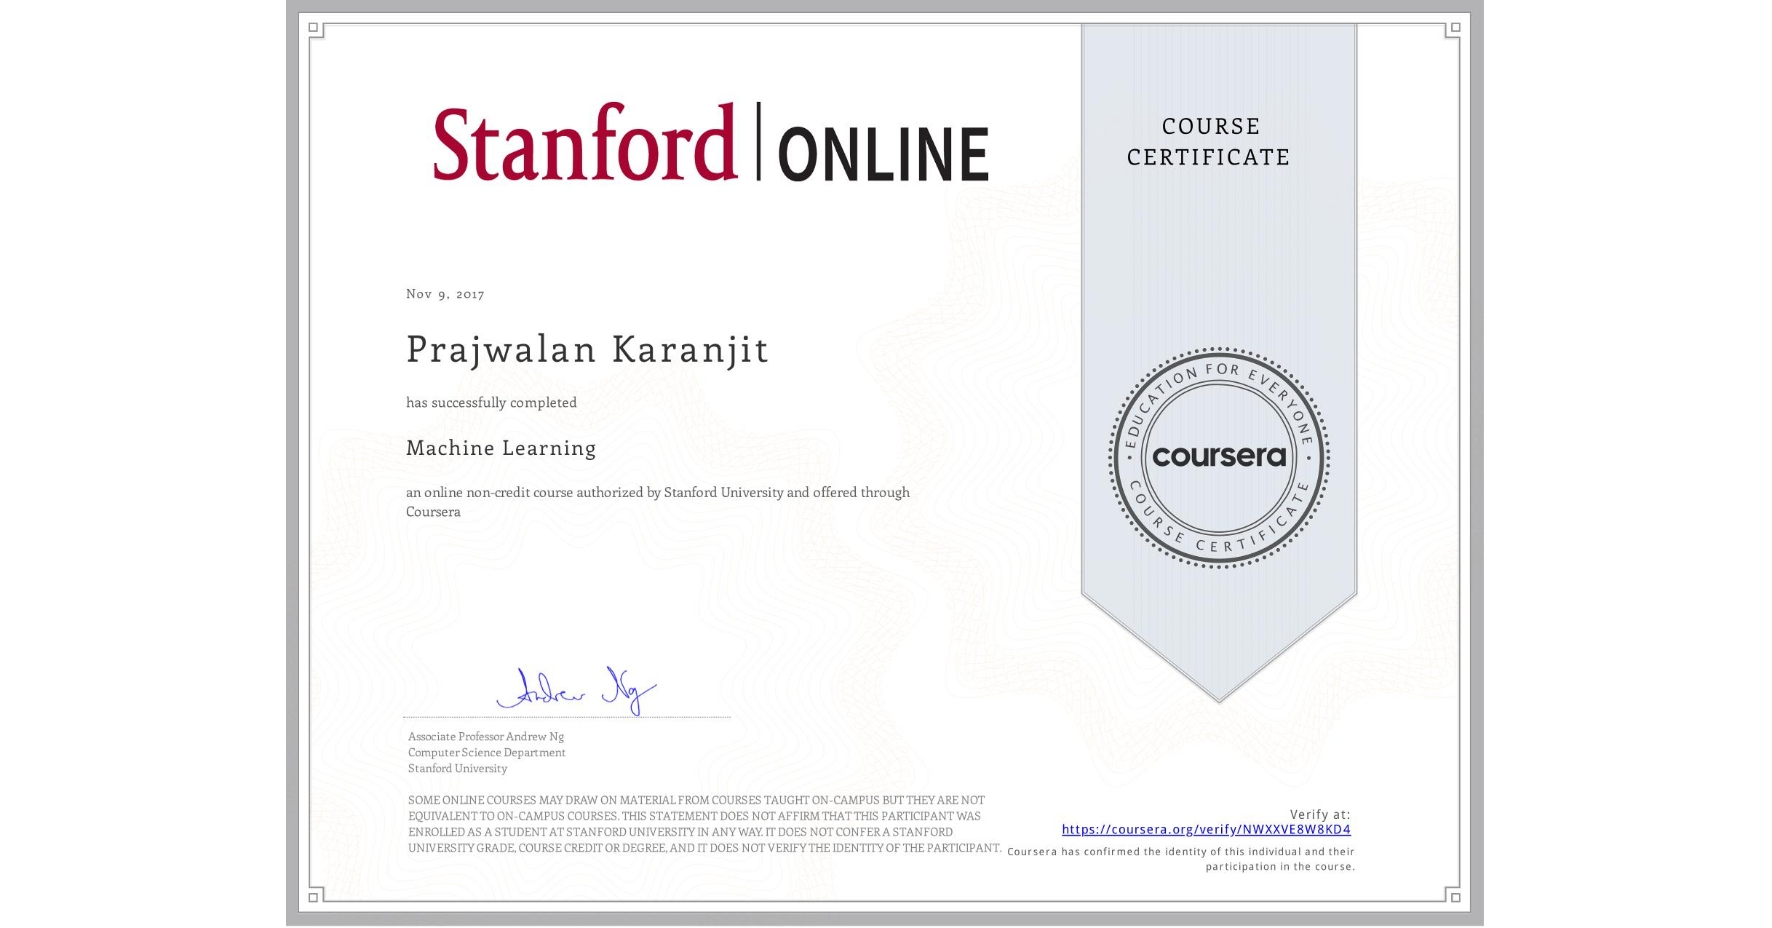 View certificate for Prajwalan Karanjit, Machine Learning, an online non-credit course authorized by Stanford University and offered through Coursera